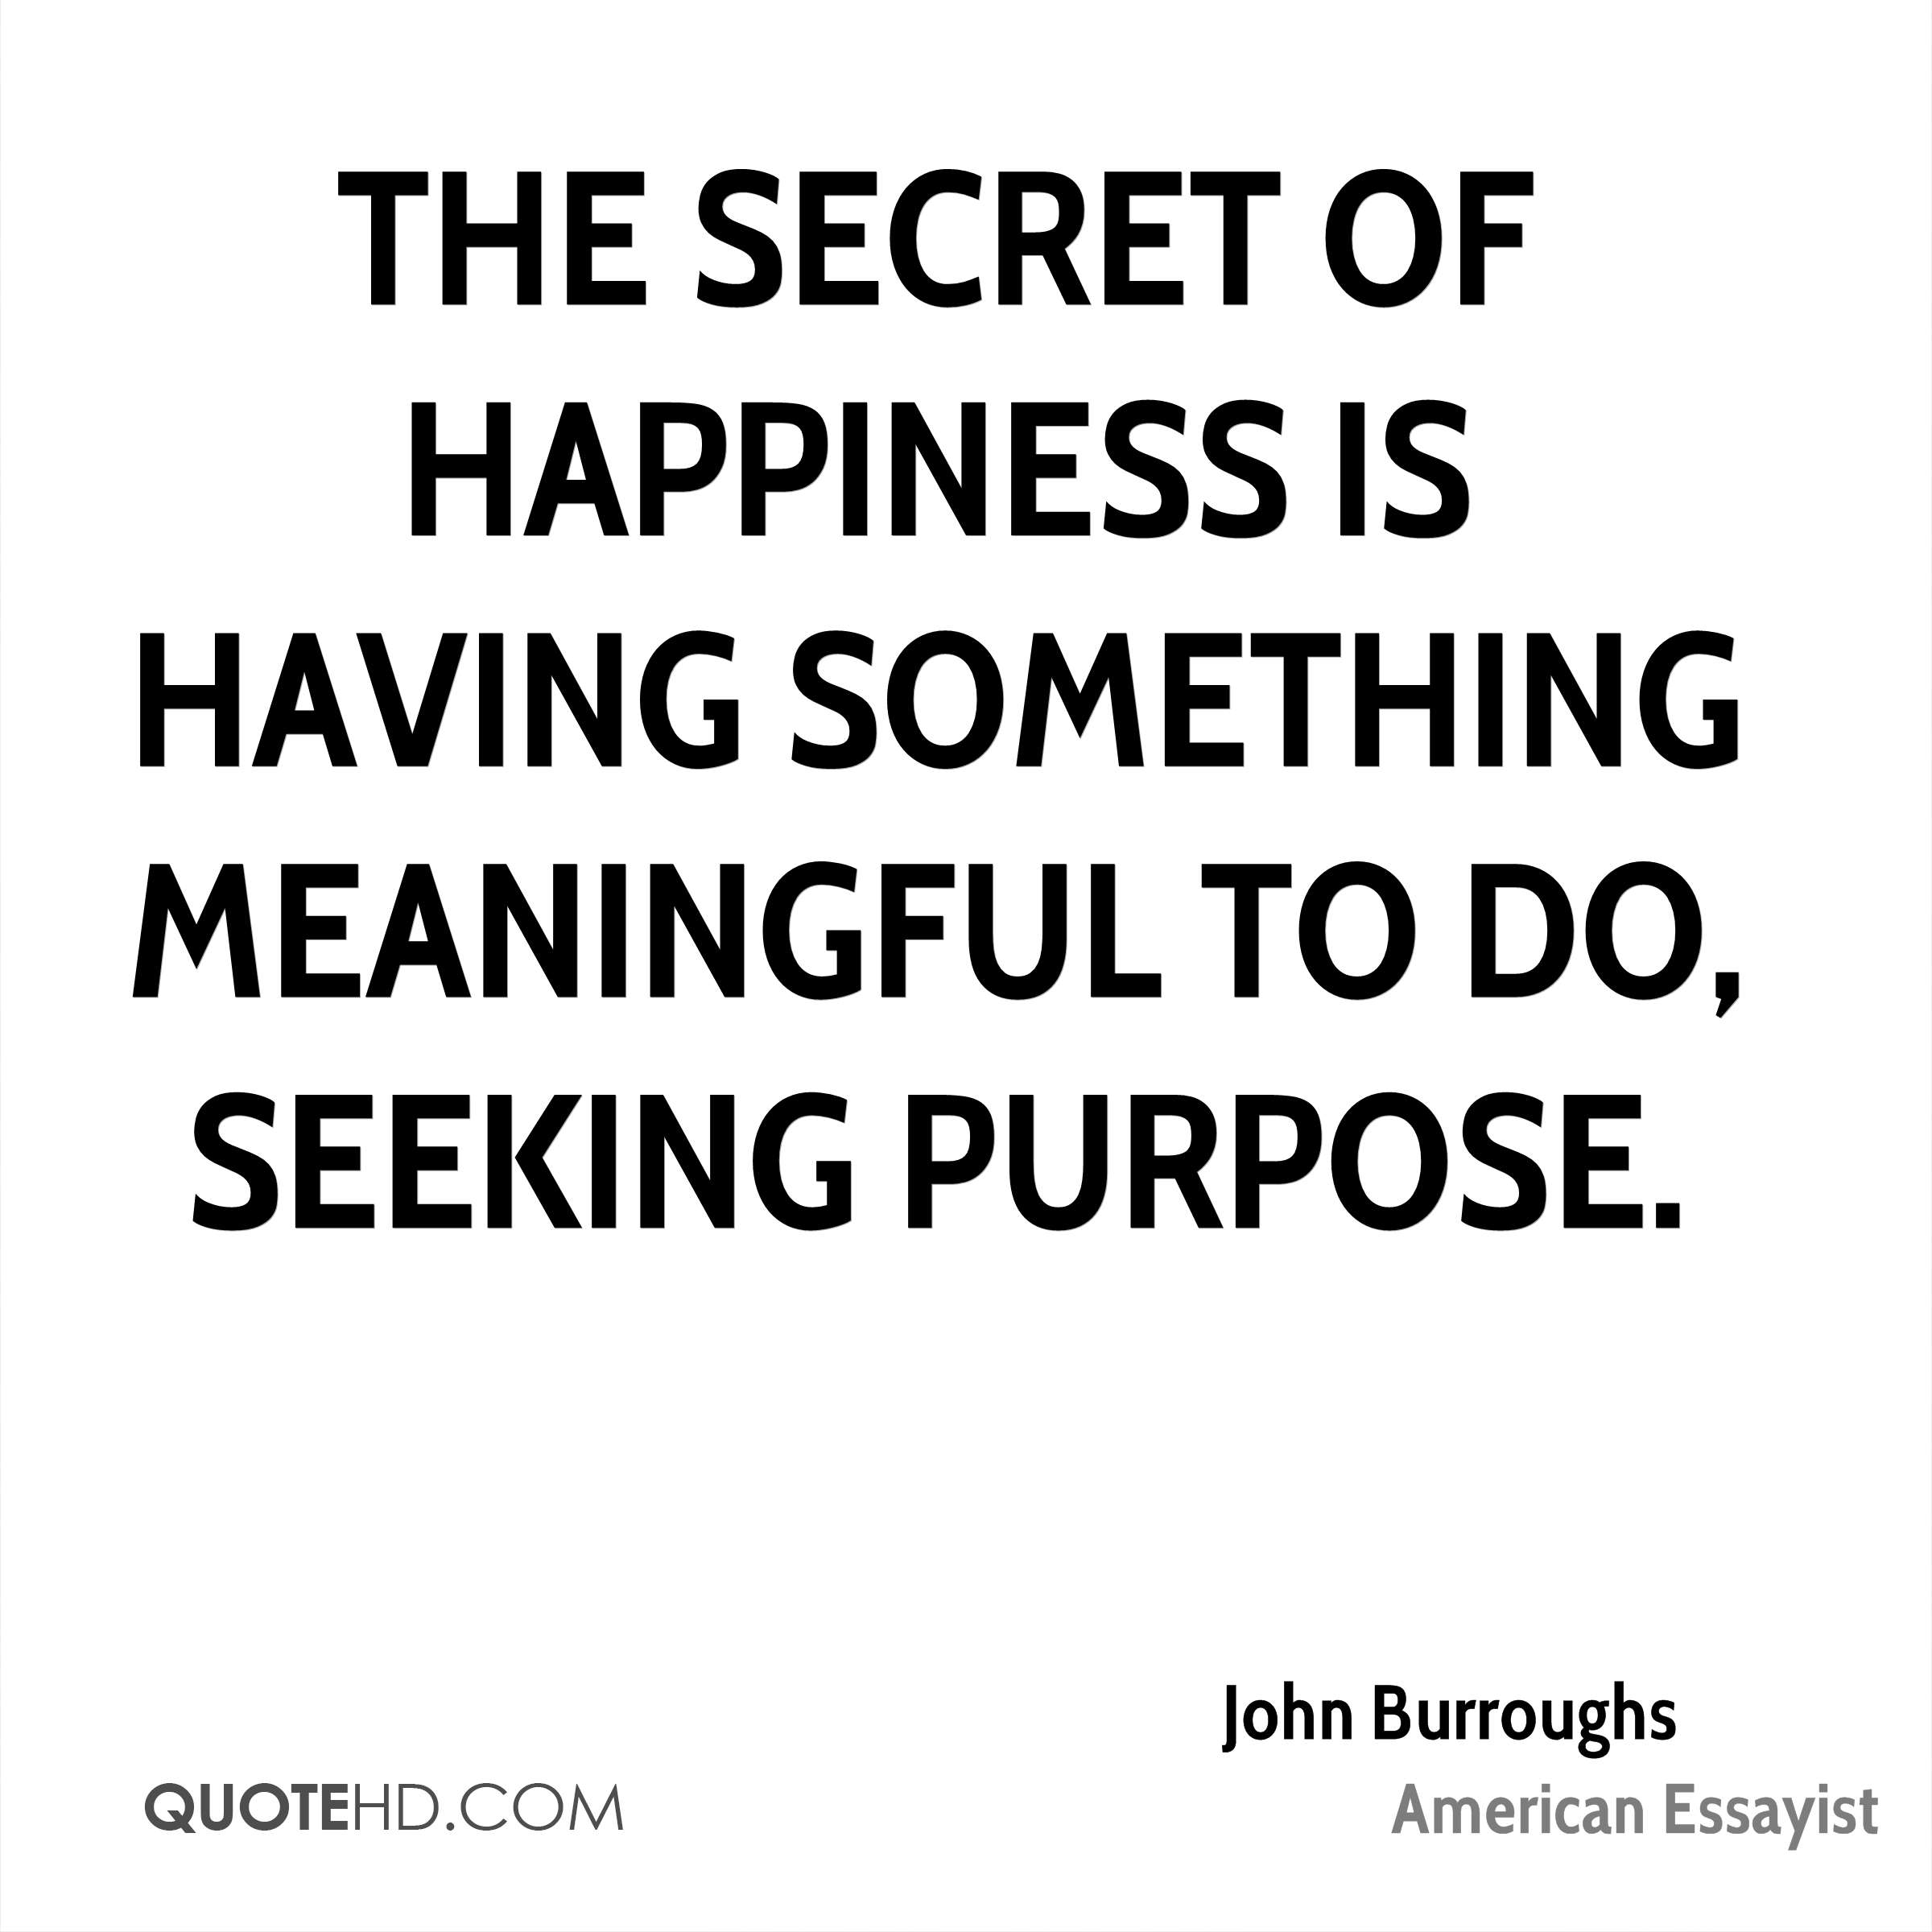 The secret of happiness is having something meaningful to do, seeking purpose.